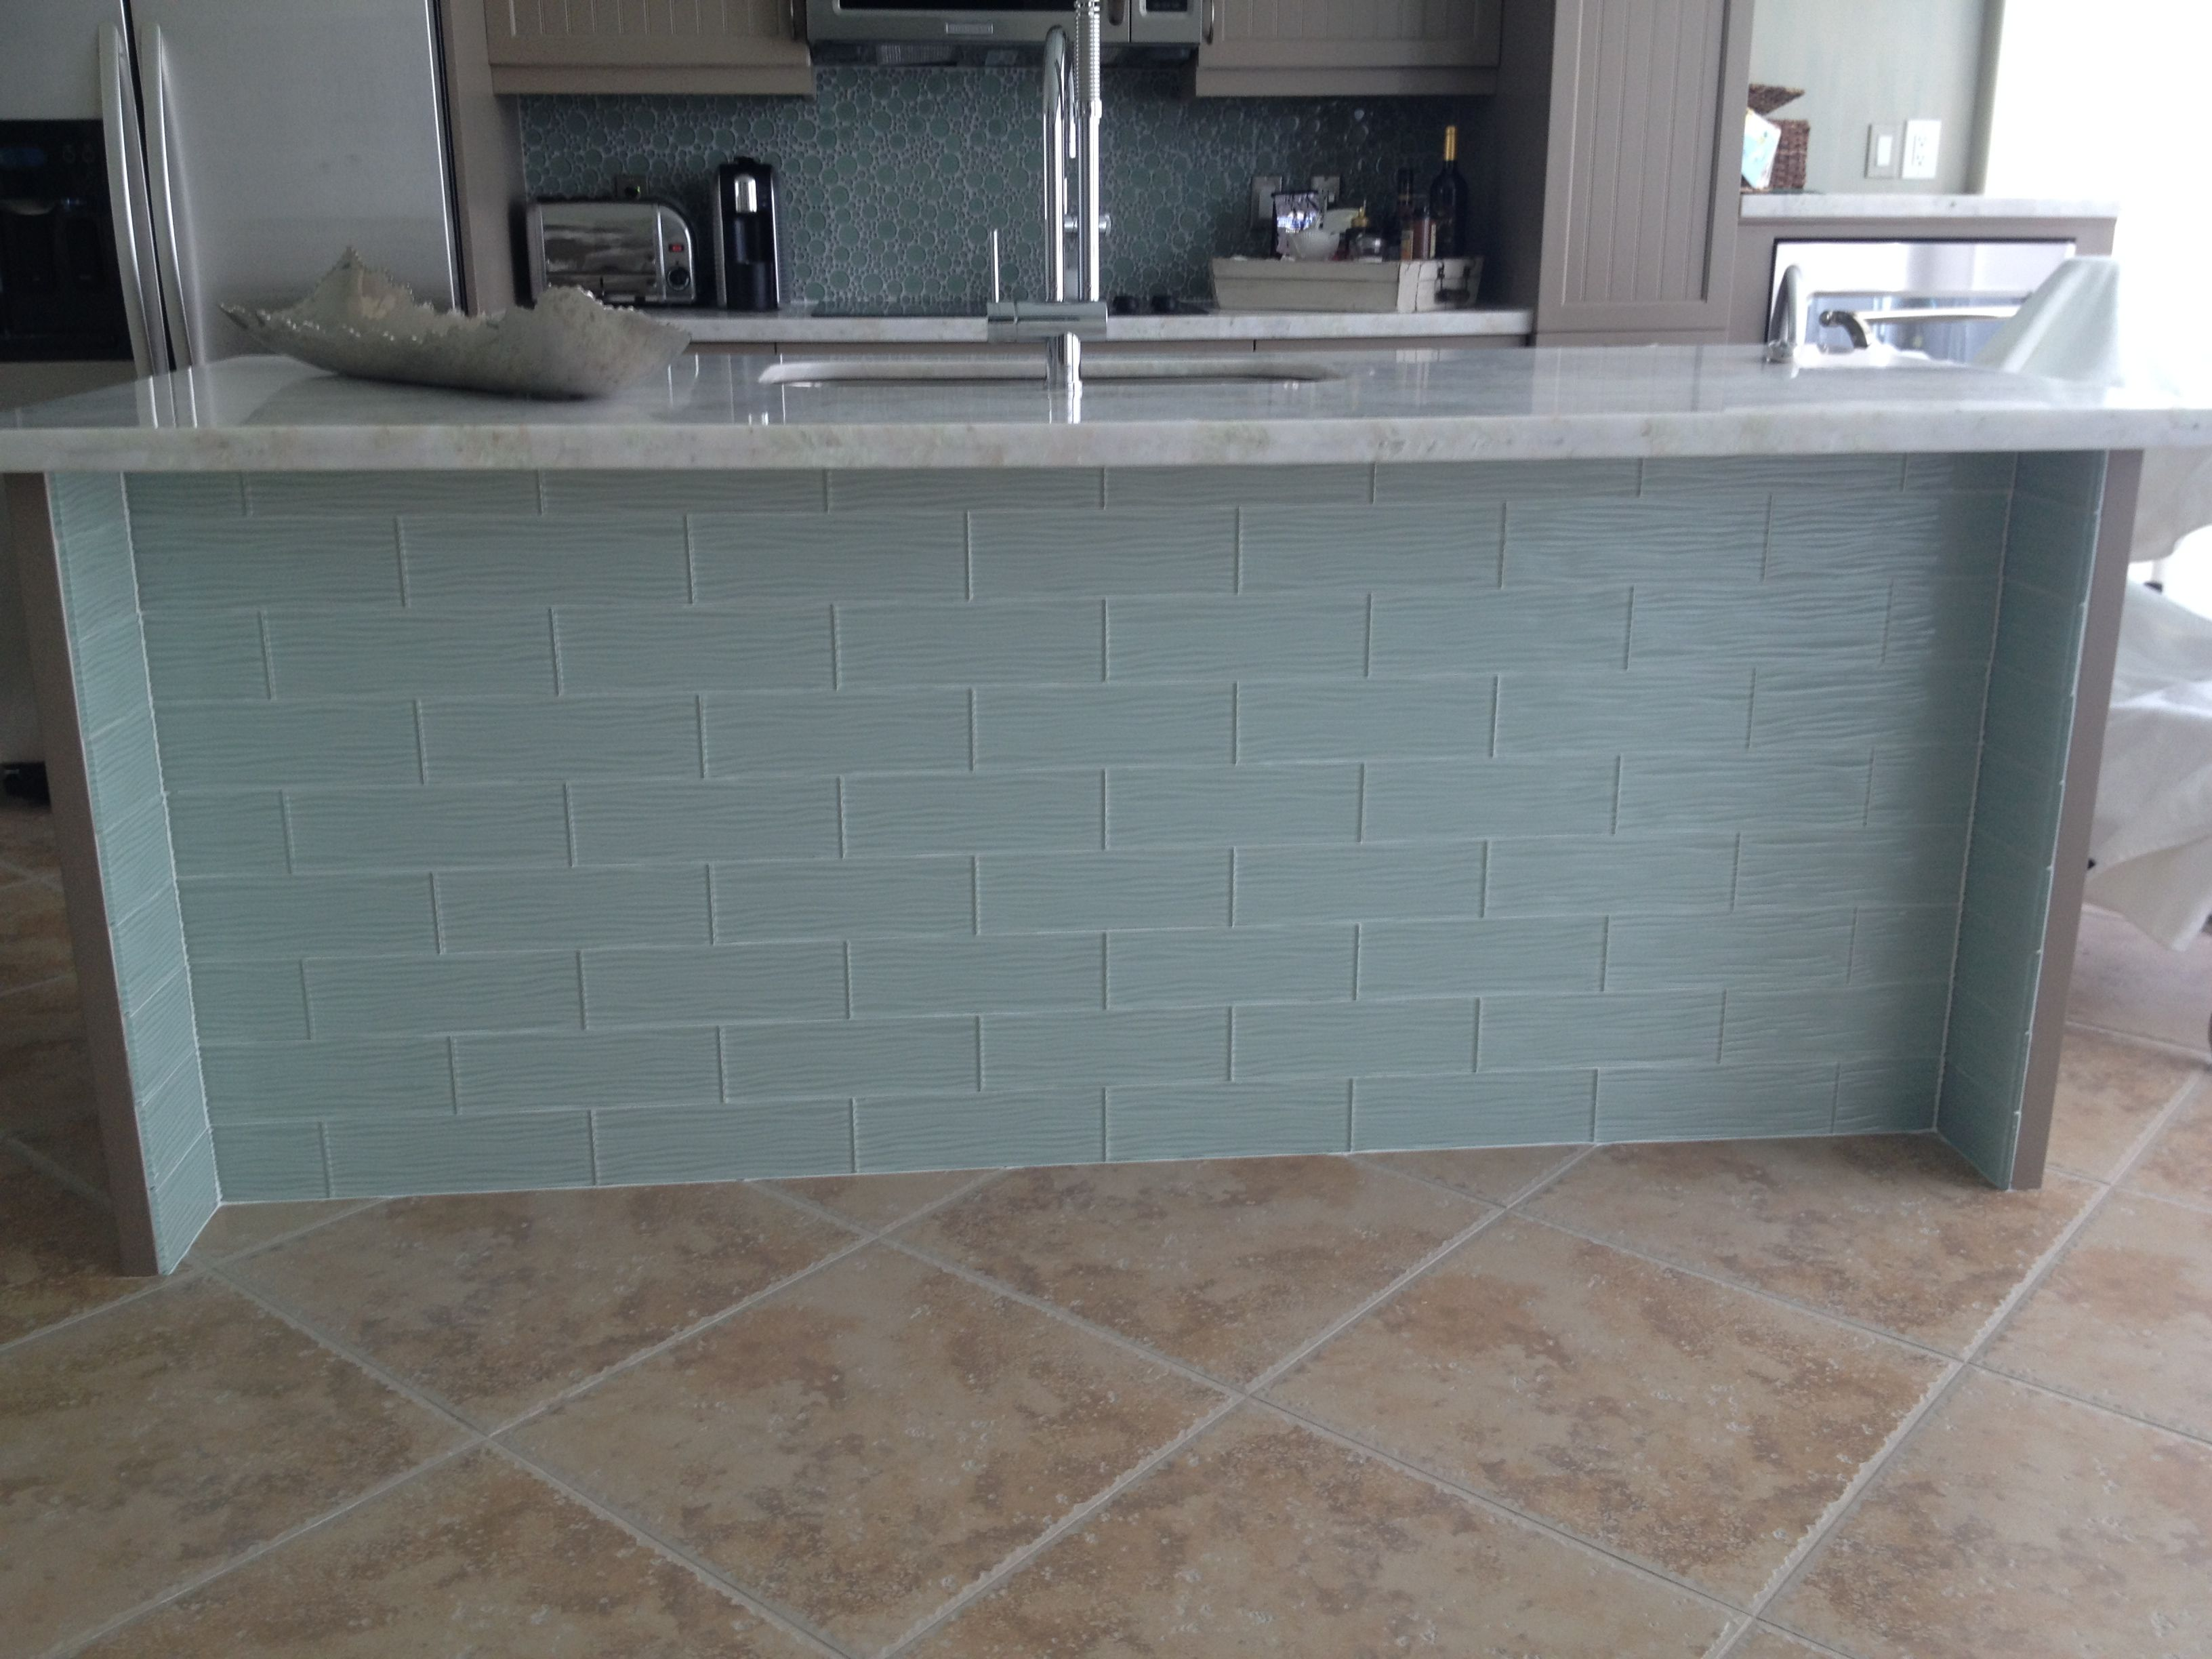 Beachy Kitchen With Lady Onyx Countertops And Glass Tile At Front